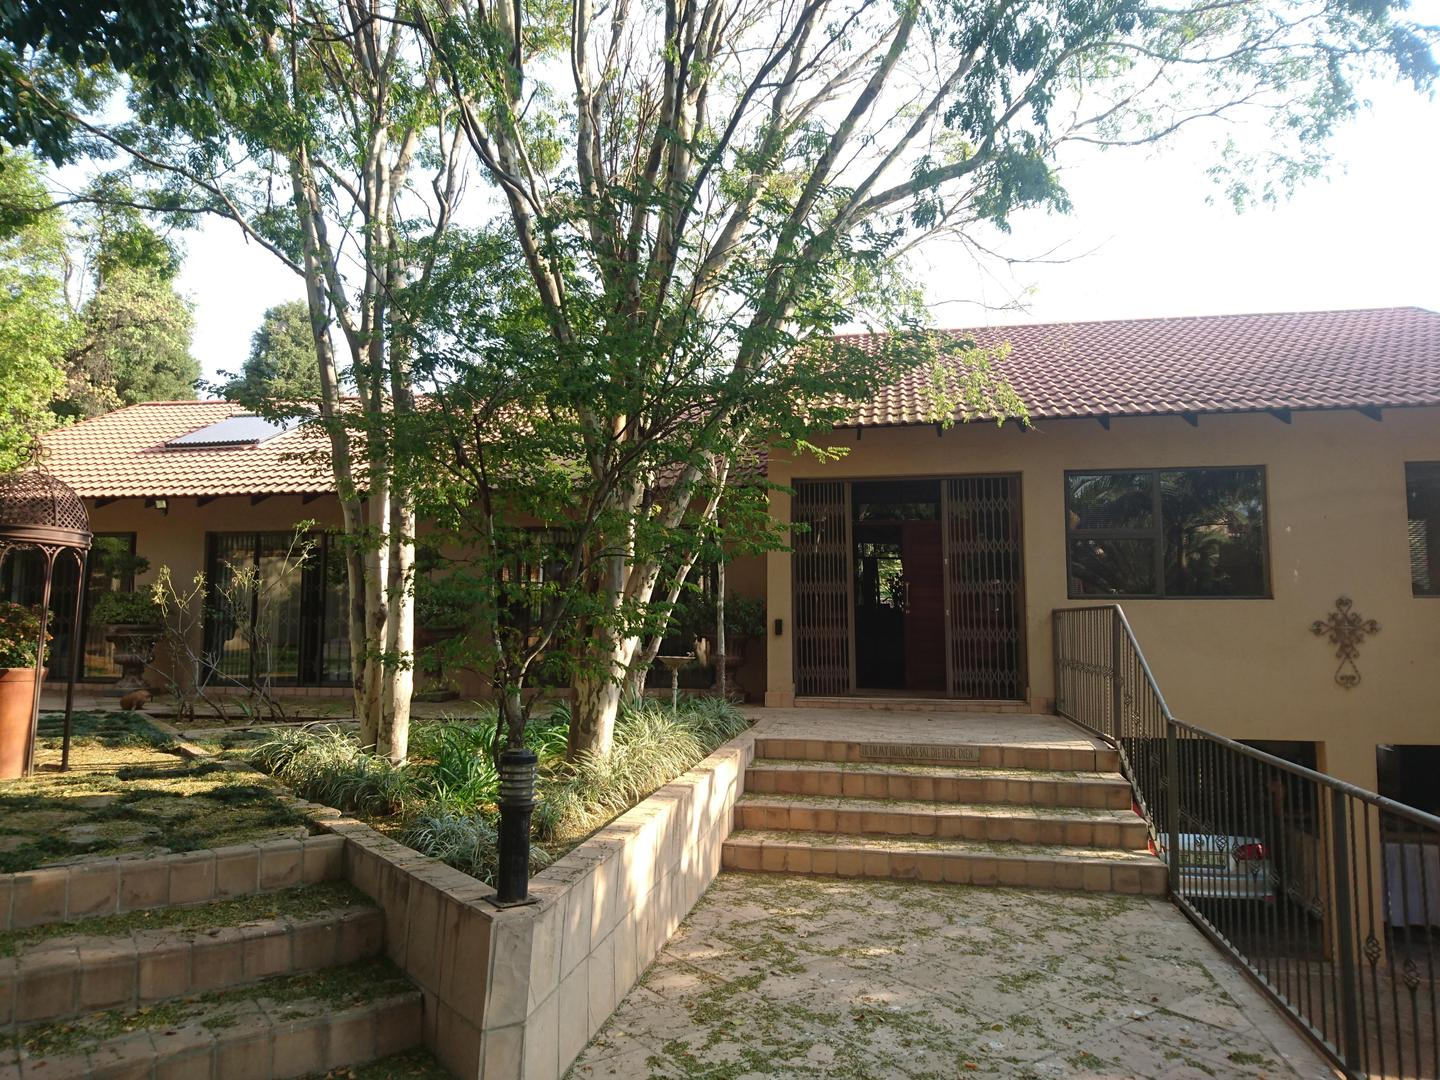 3 Bedroom House To Rent In Safari Gardens 1801590 : Photo#0